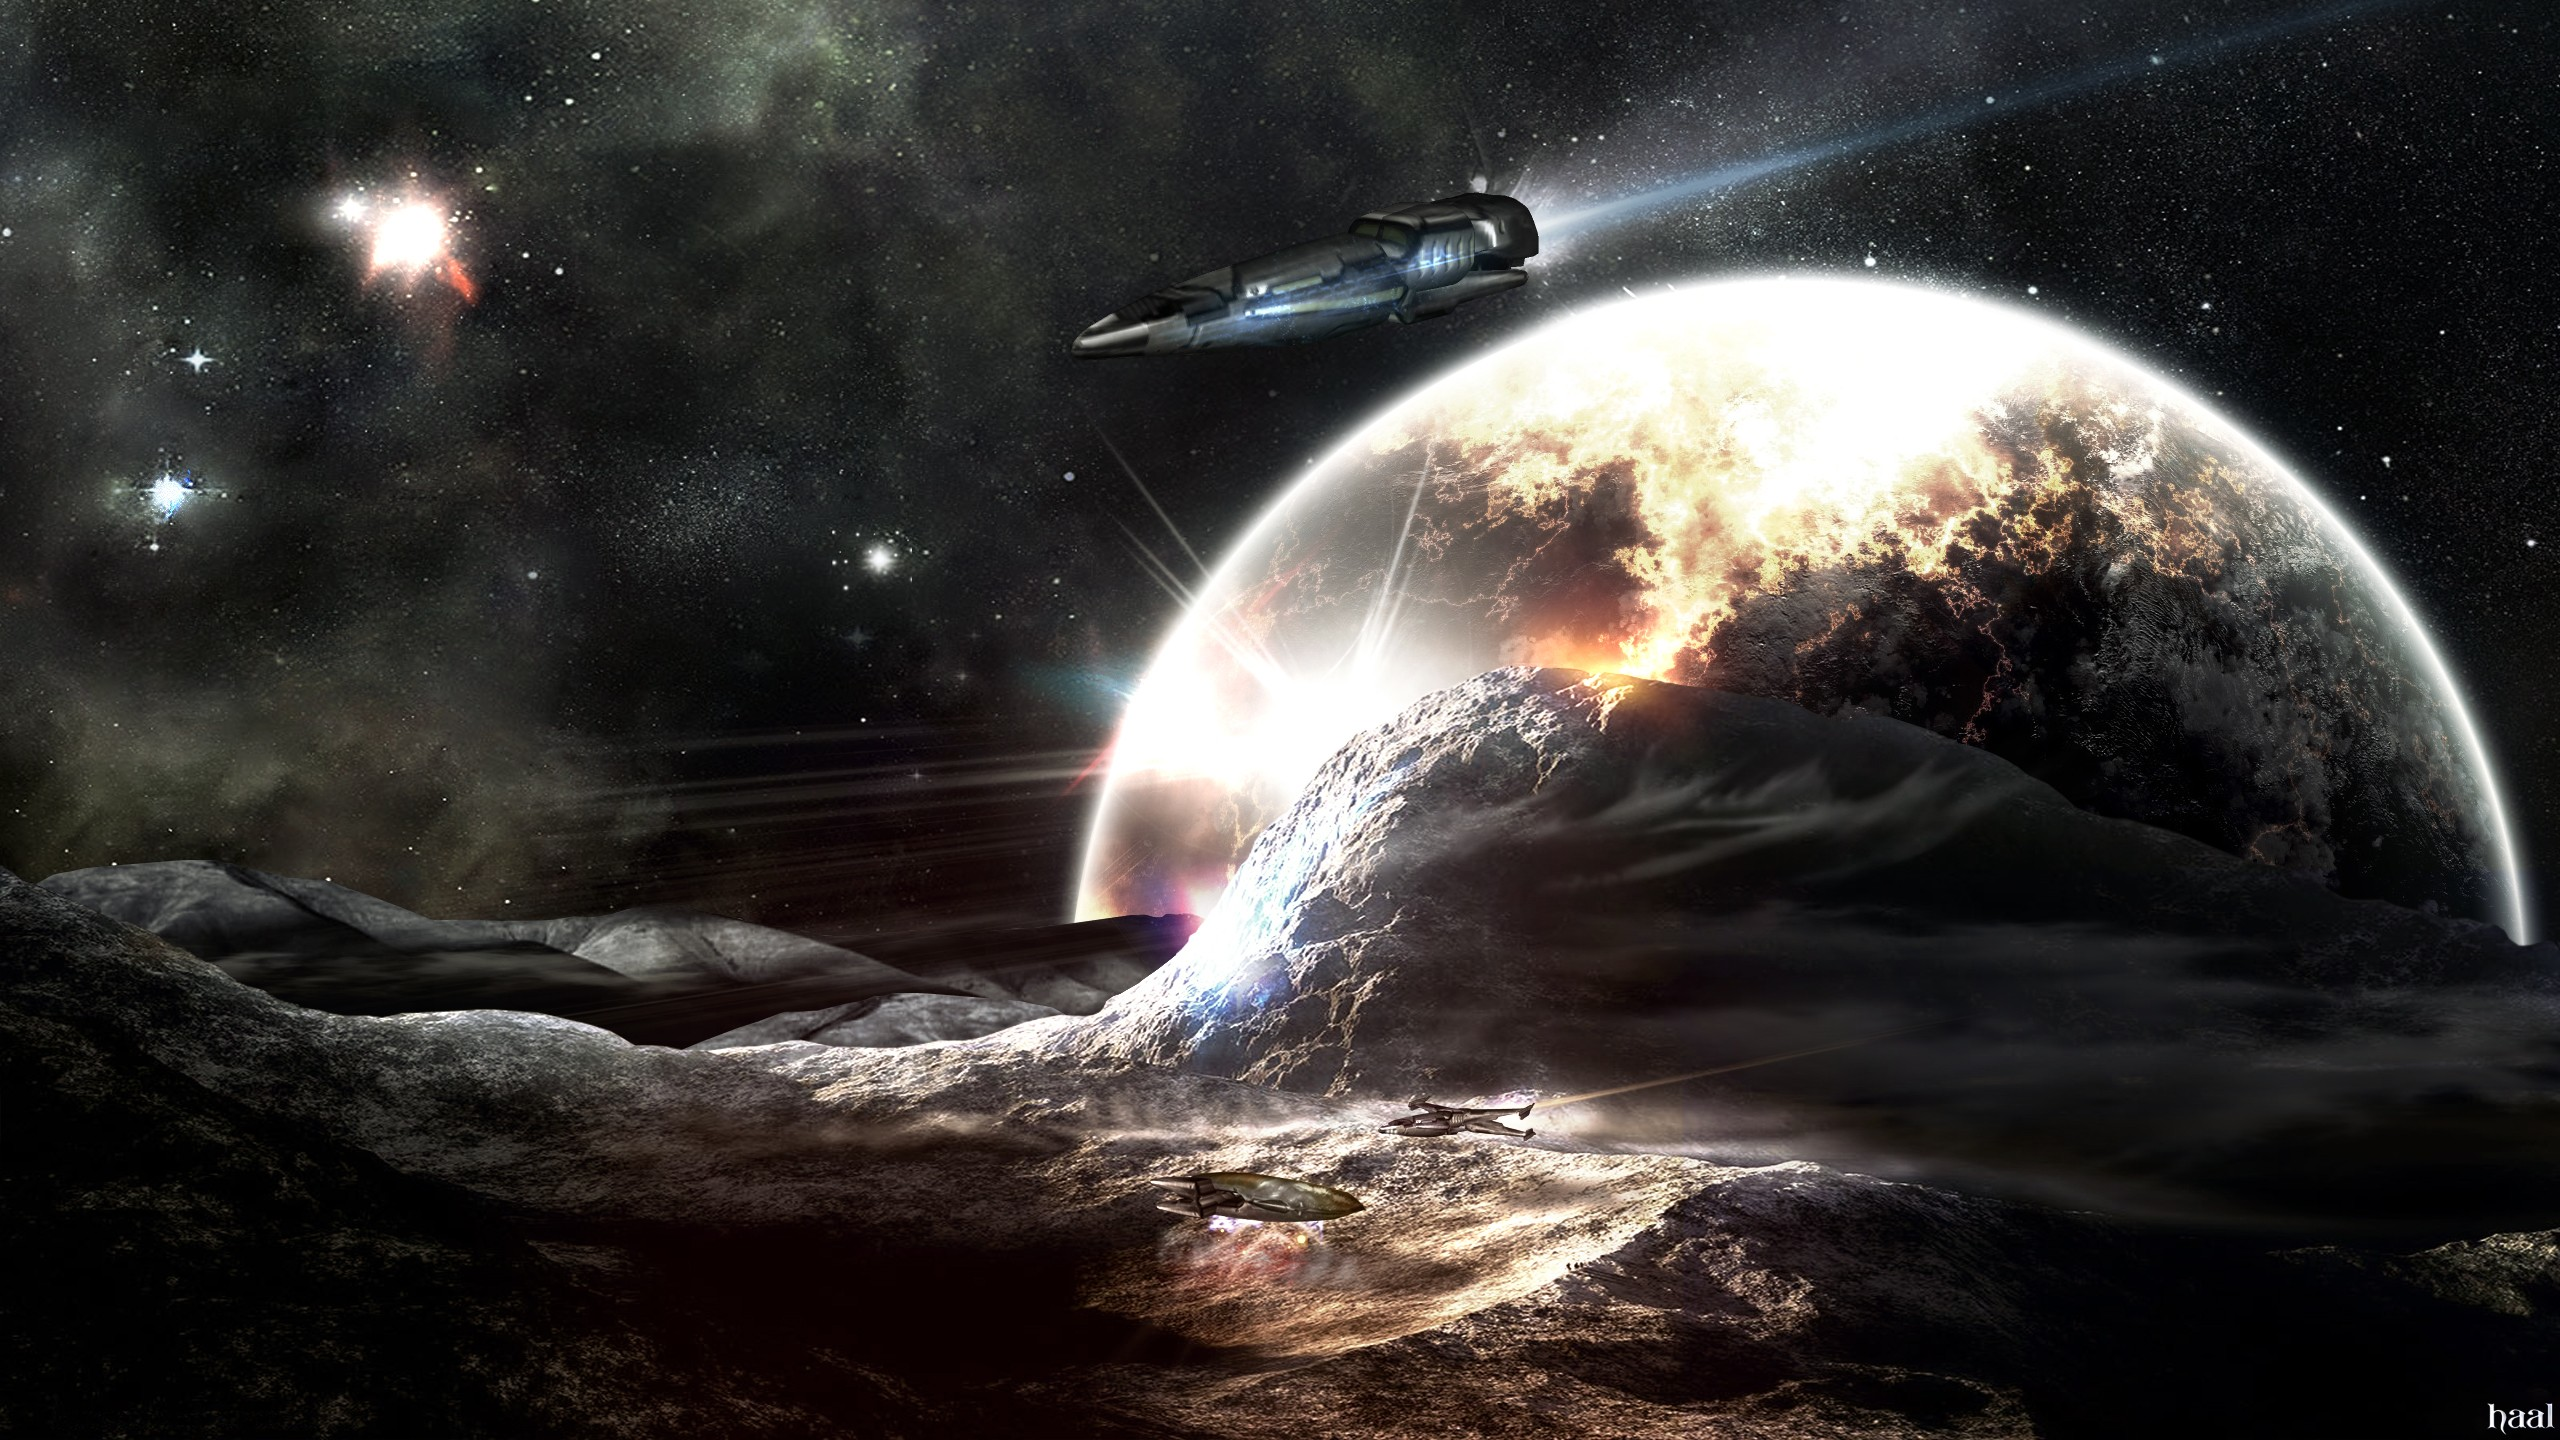 outer space shuttle photo manipulation HD Wallpaper   Space Planets 2560x1440